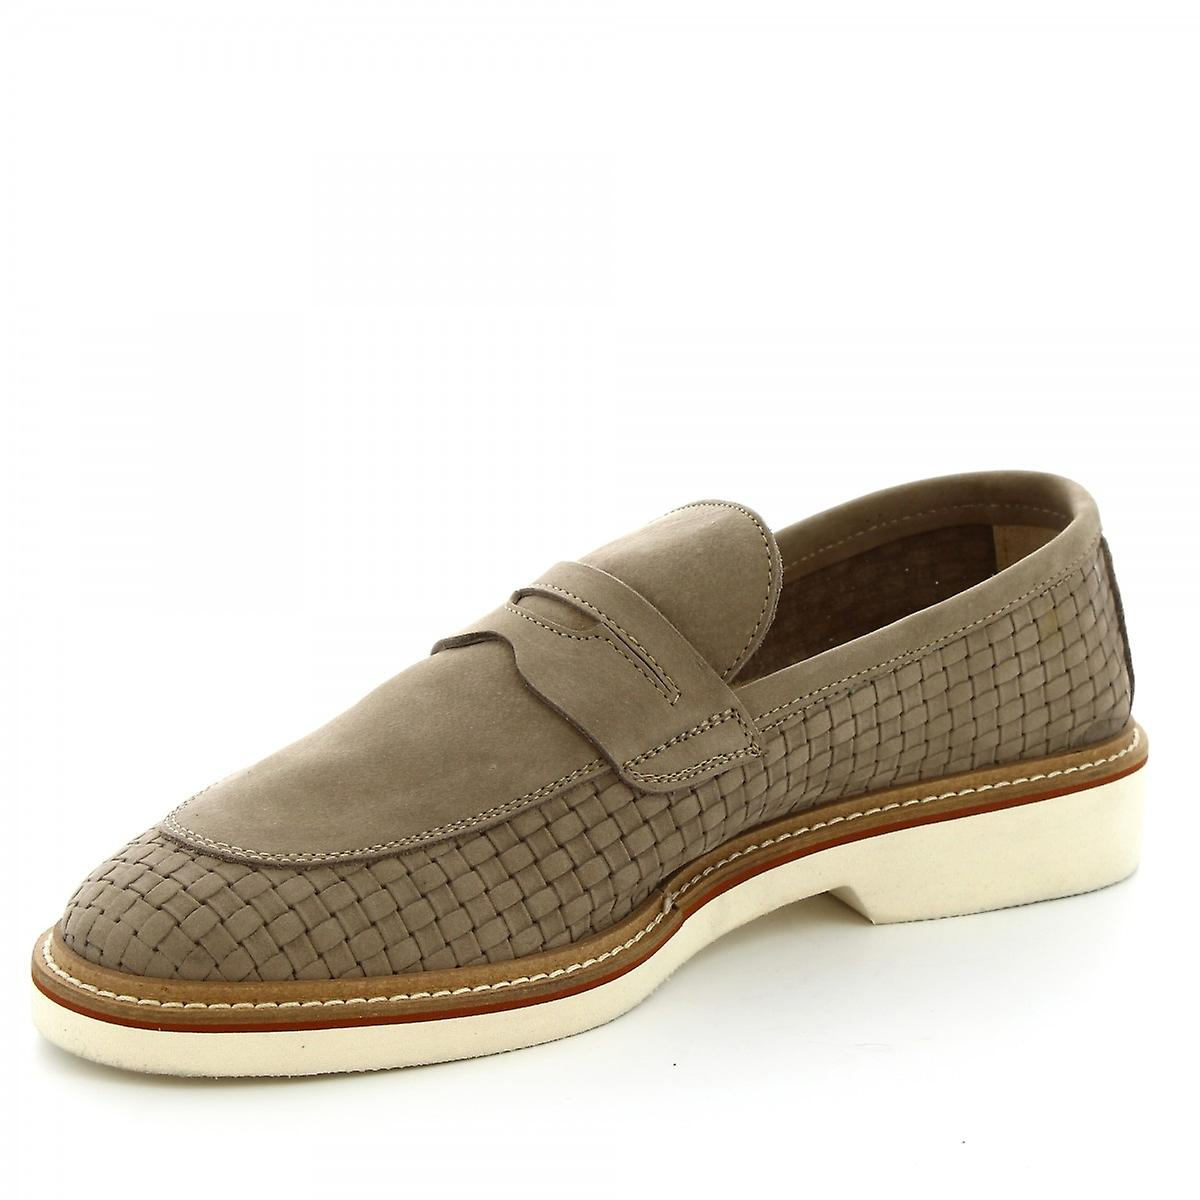 Leonardo Shoes Men's Handmade Loafers In Woven Taupe Suede Leather